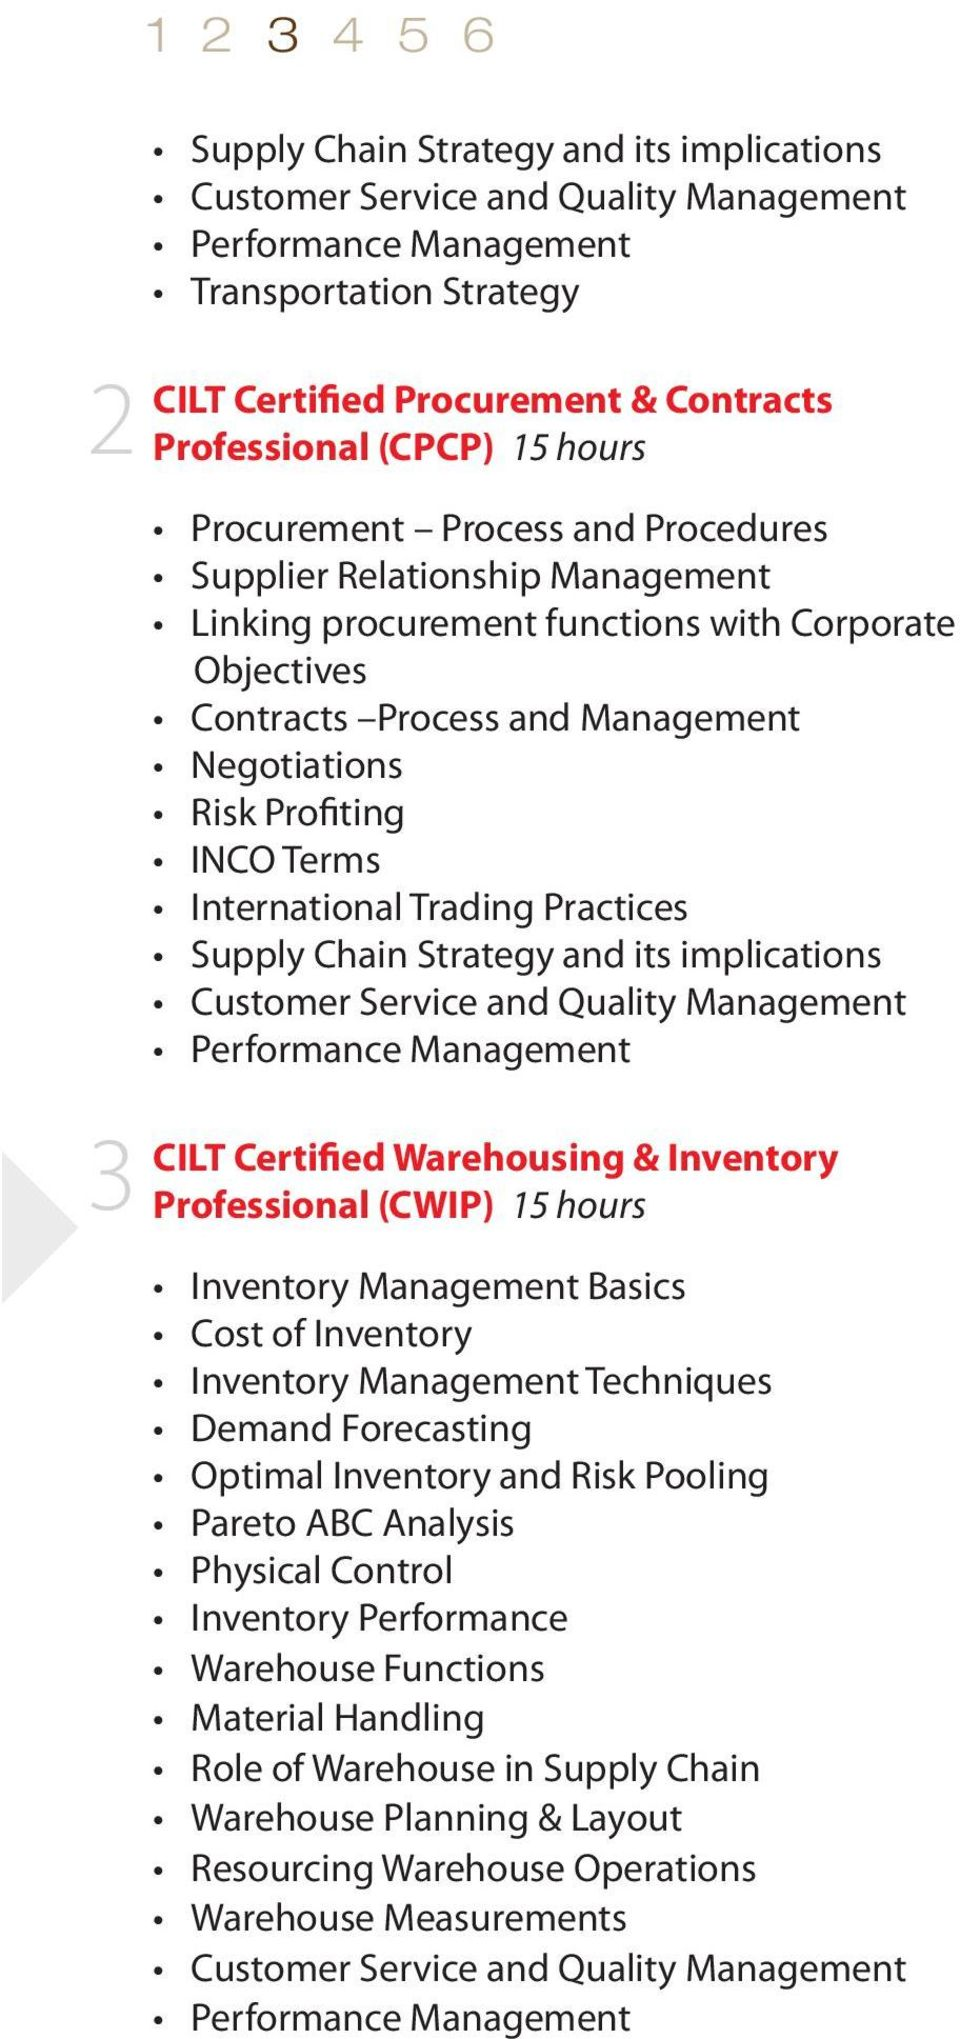 its implications CILT Certified Warehousing & Inventory Professional (CWIP) 15 hours Inventory Management Basics Cost of Inventory Inventory Management Techniques Demand Forecasting Optimal Inventory